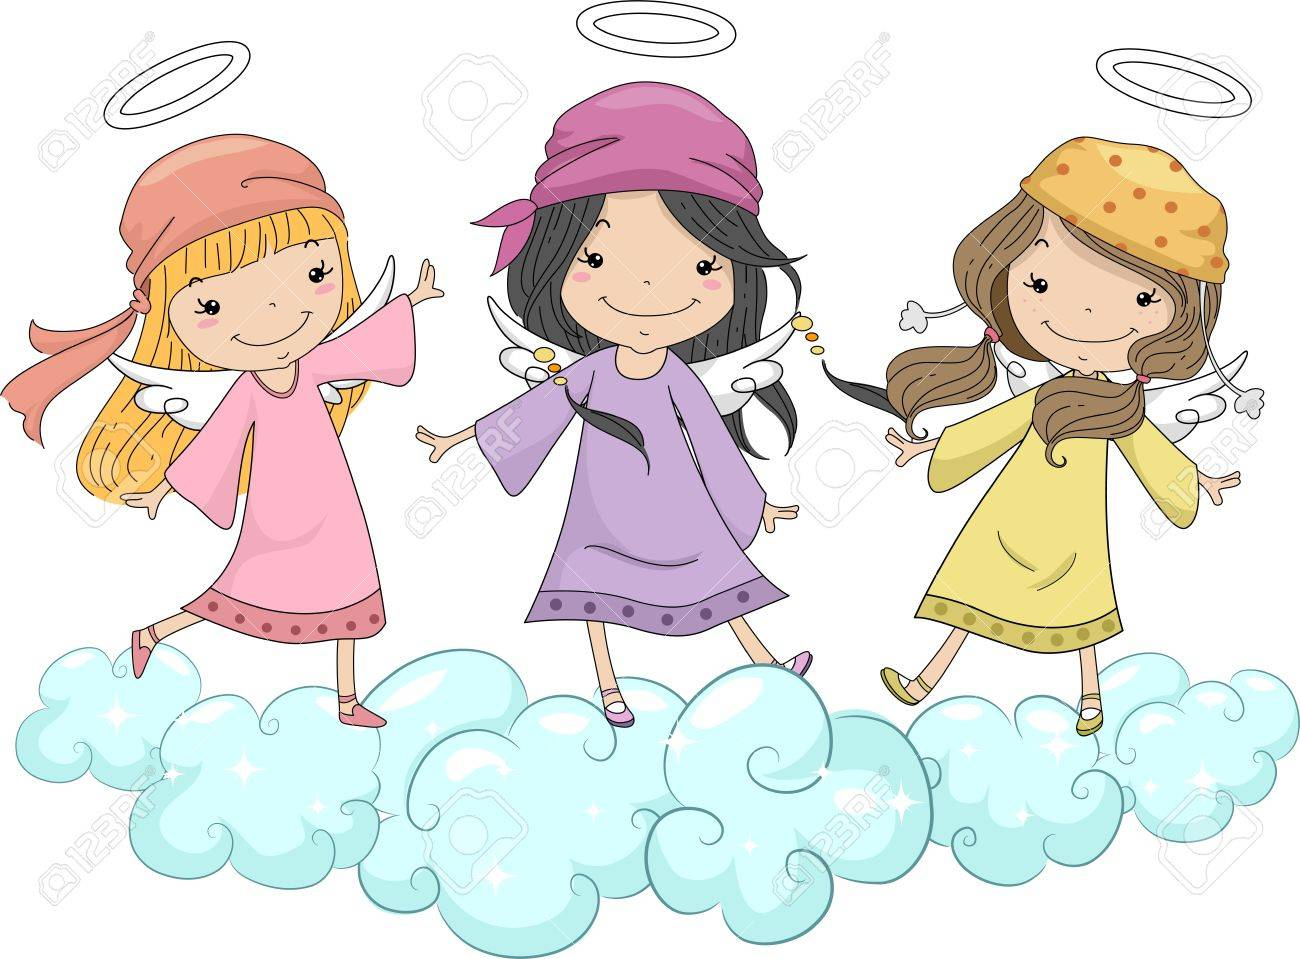 http://previews.123rf.com/images/lenm/lenm1307/lenm130700144/20614984-Illustration-of-Three-Girl-Angels-with-Head-Scarves-Standing-on-Clouds-Stock-Illustration.jpg